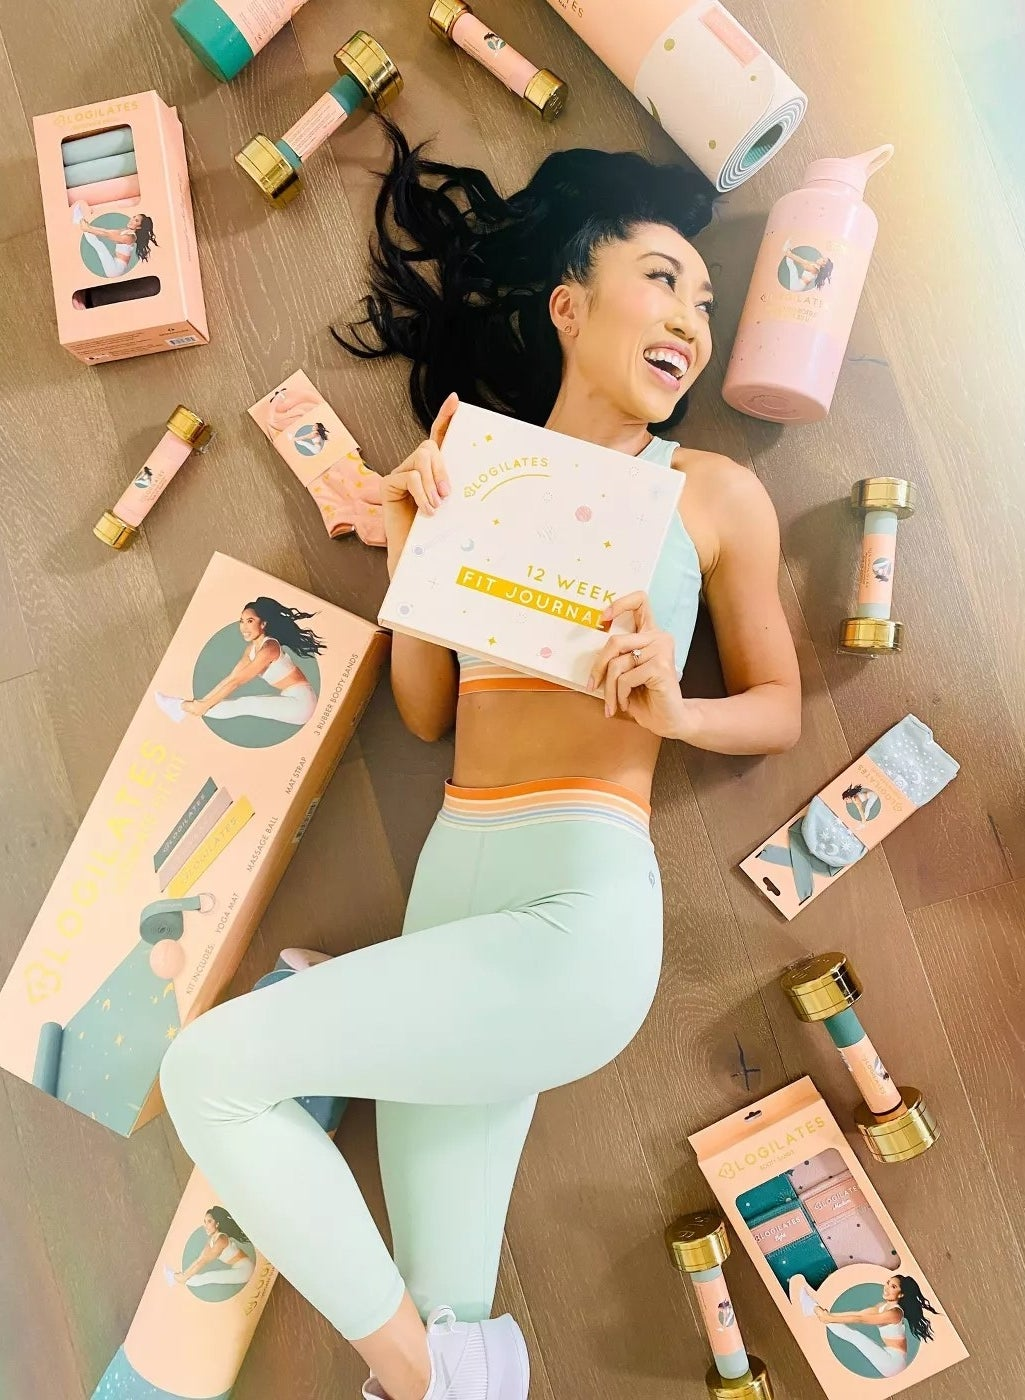 A model with Blogilates gear